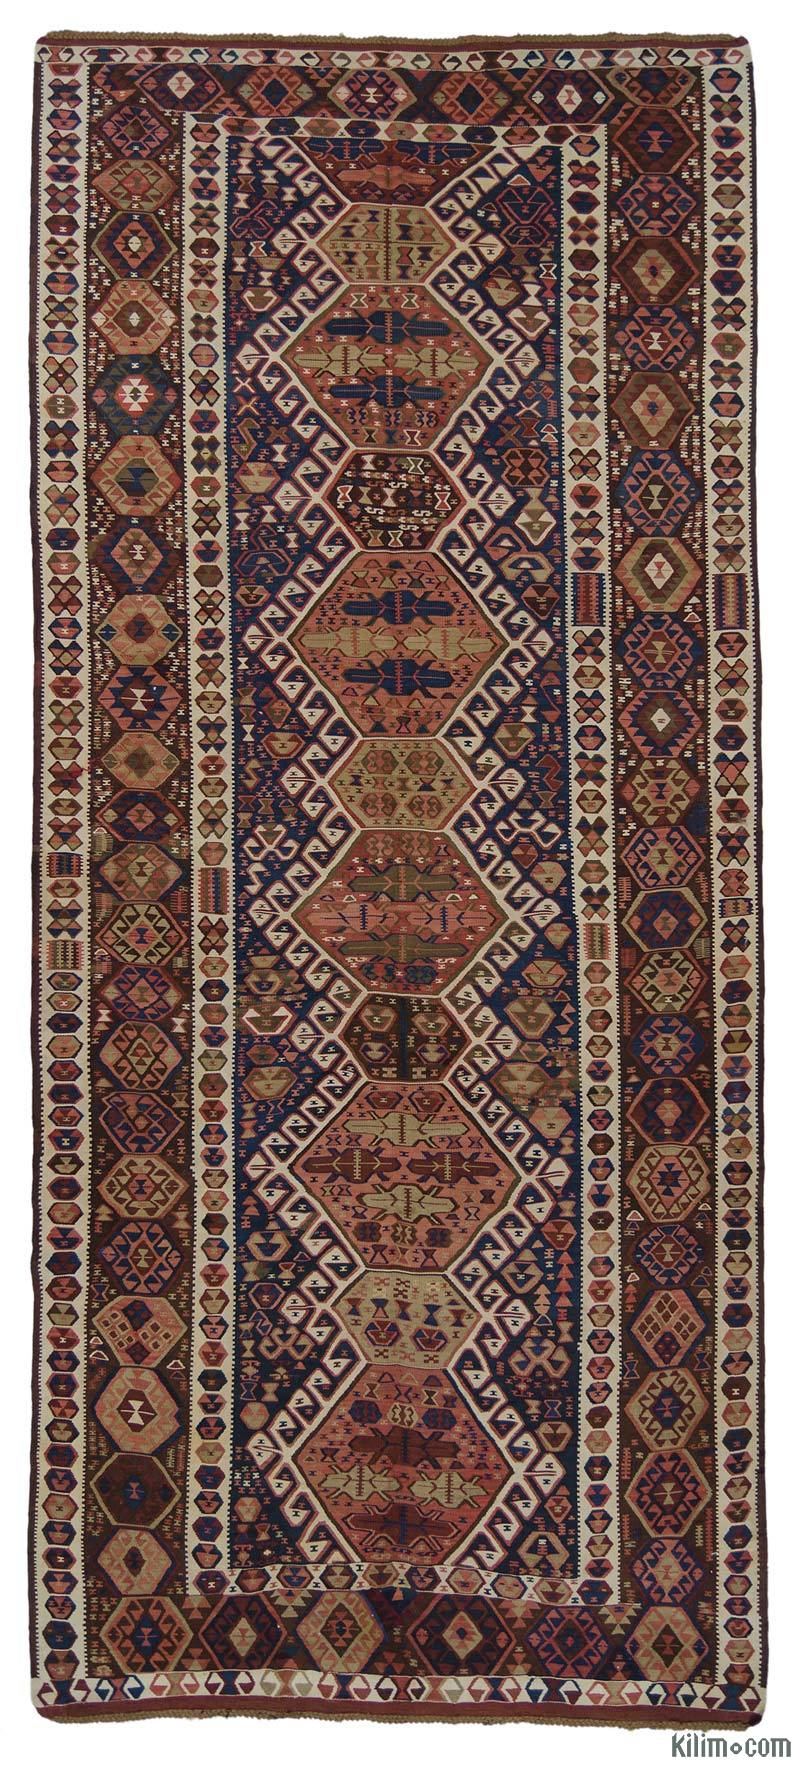 K0015966 Blue Antique Kagizman Kilim Rug